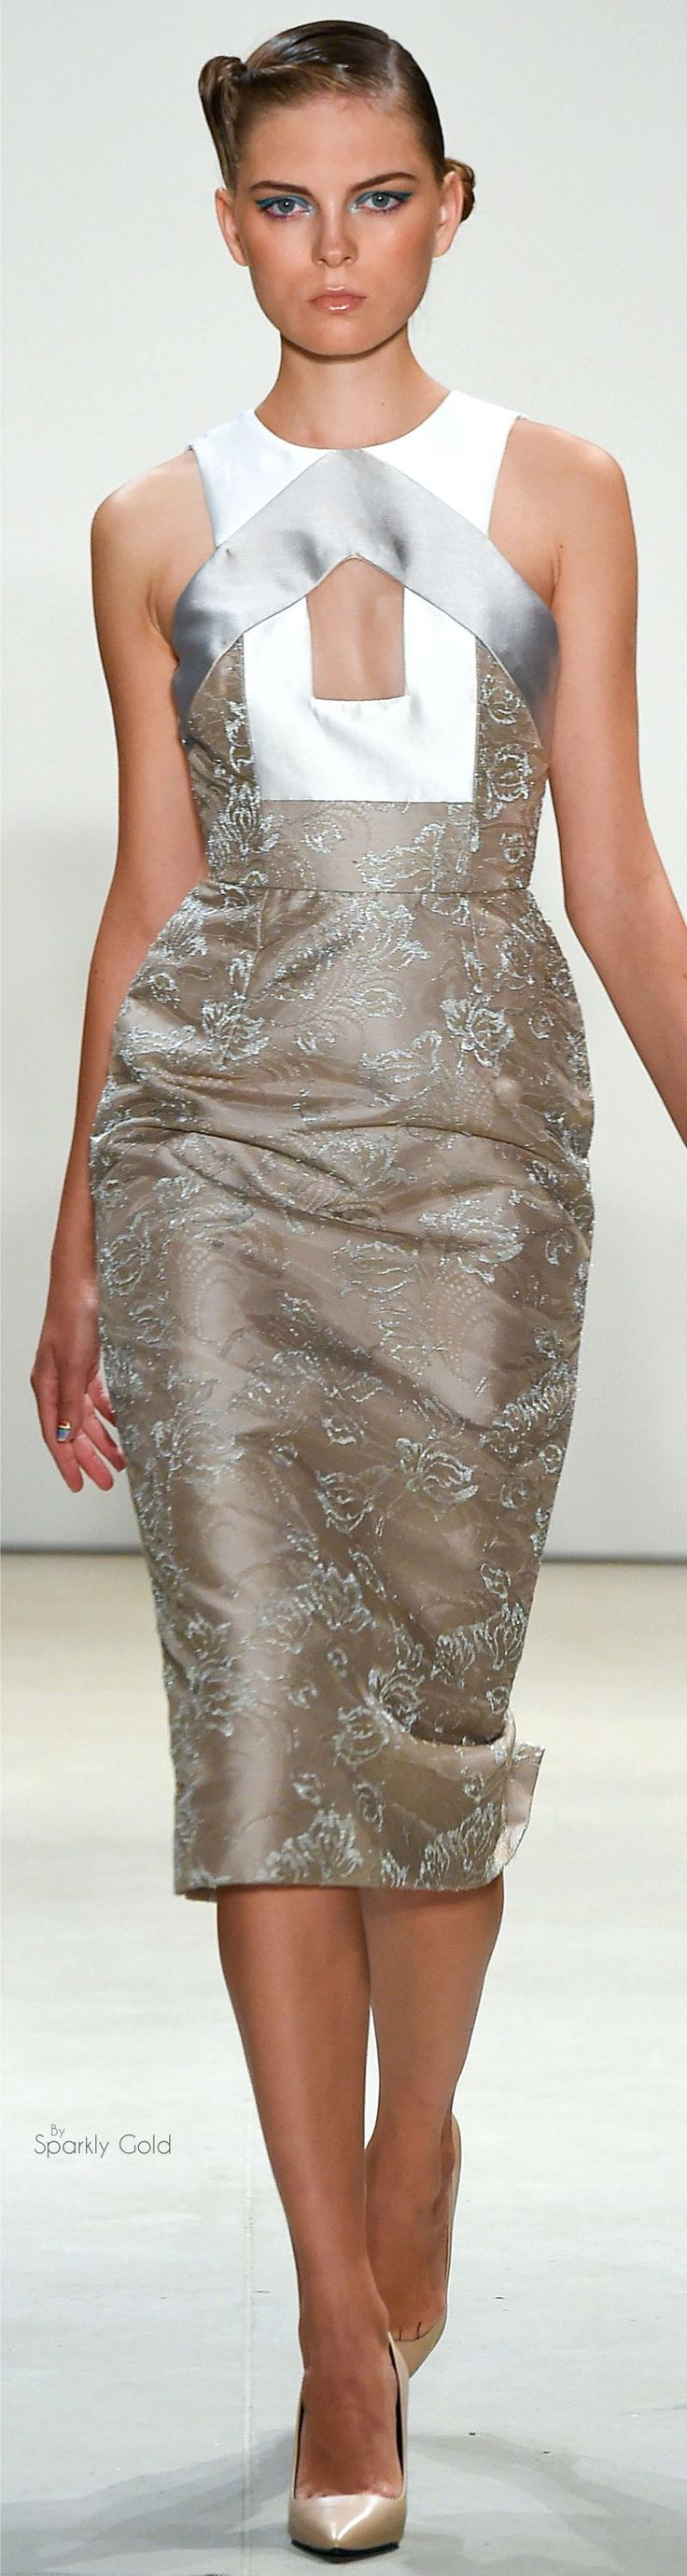 Bibhu Mohapatra Spring 2016 RTW women fashion outfit clothing style apparel @roressclothes closet ideas